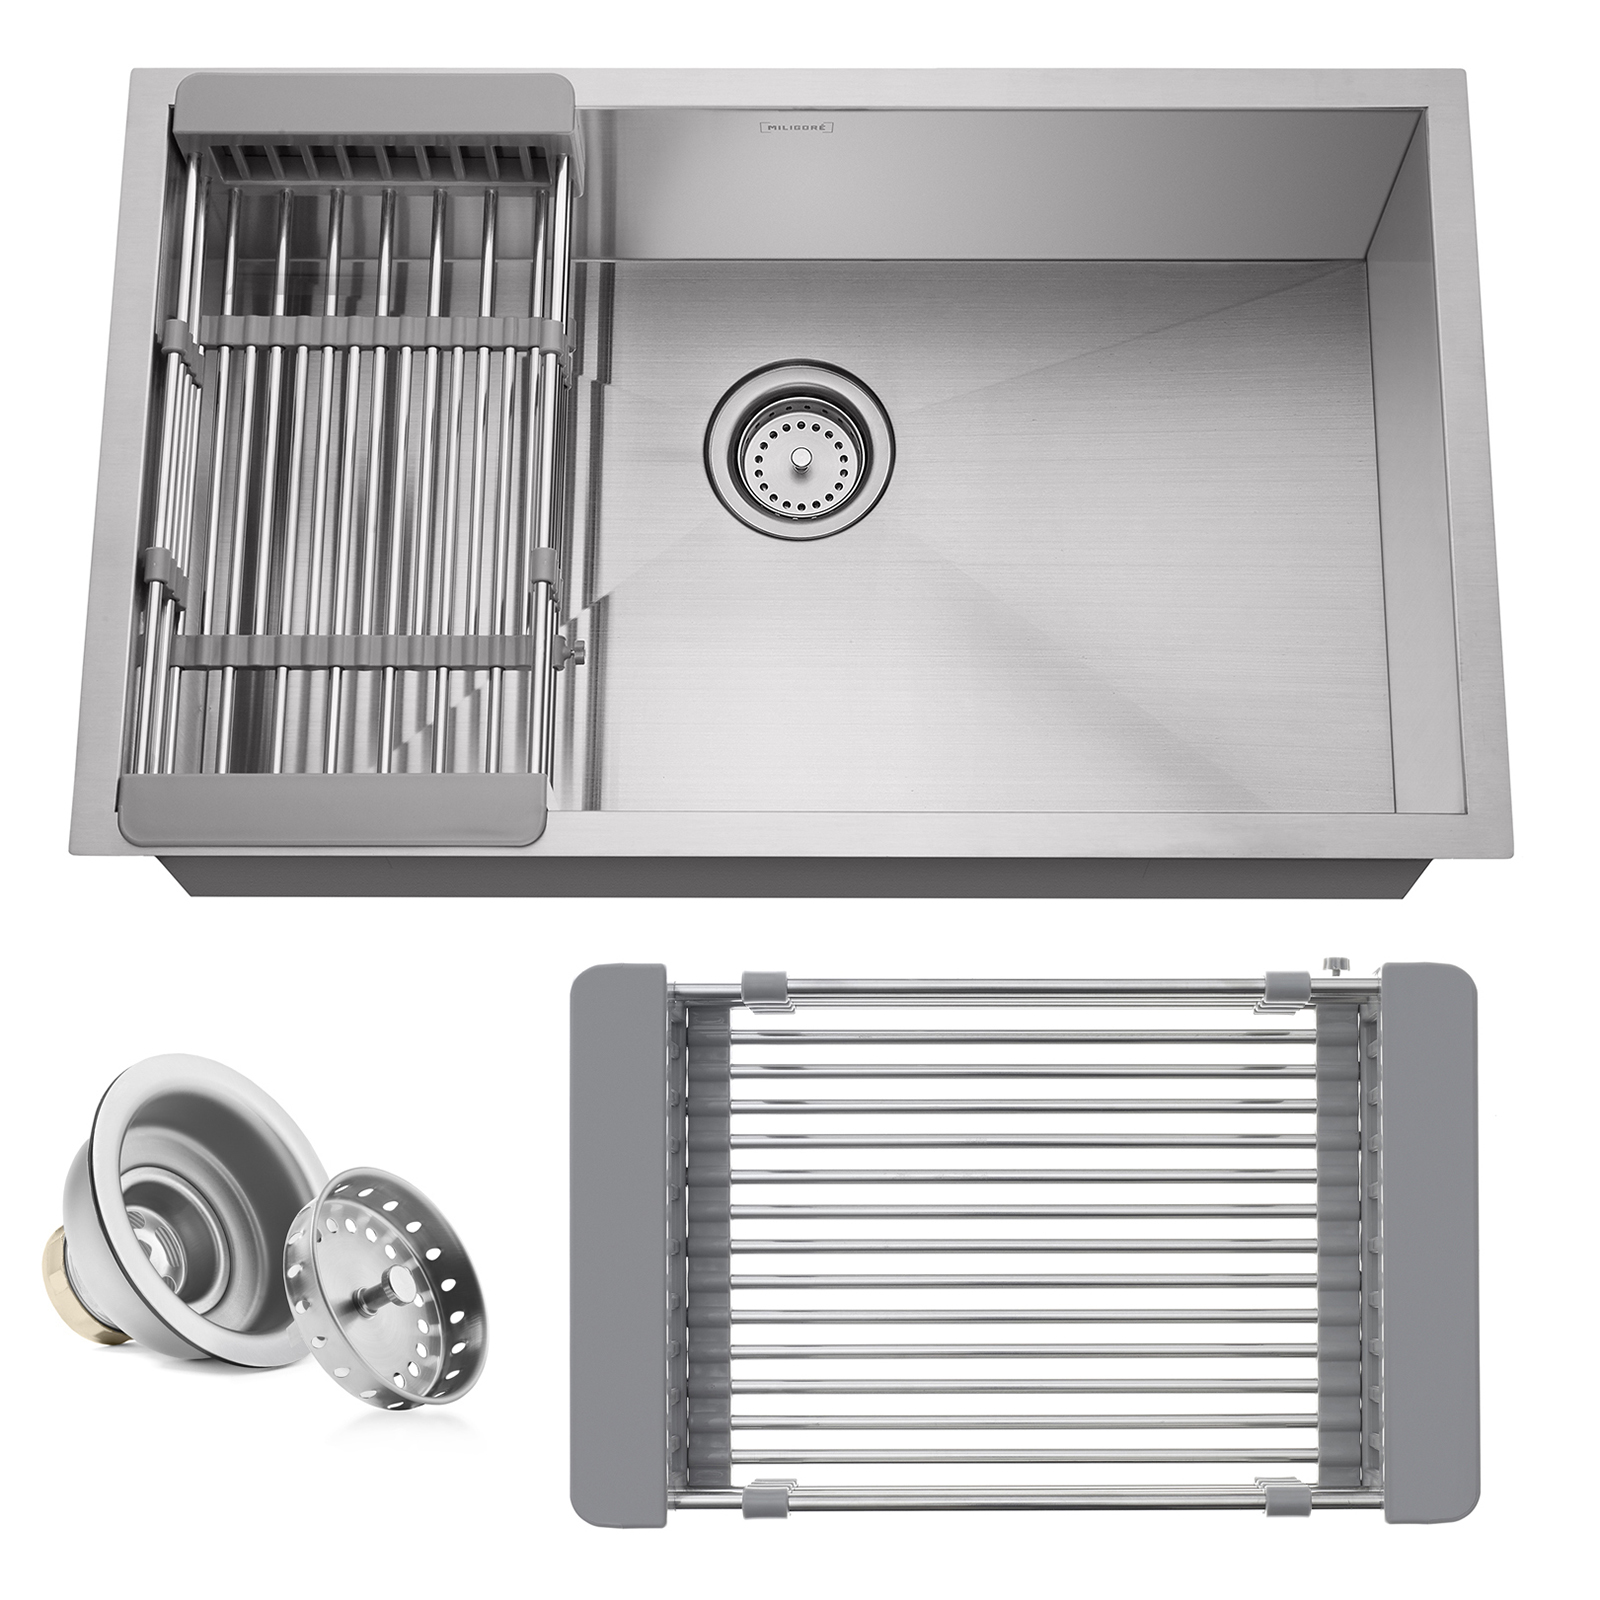 Details About 30 X18 X9 Stainless Steel Single Bowl Undermount Kitchen Sink Basin With Rack